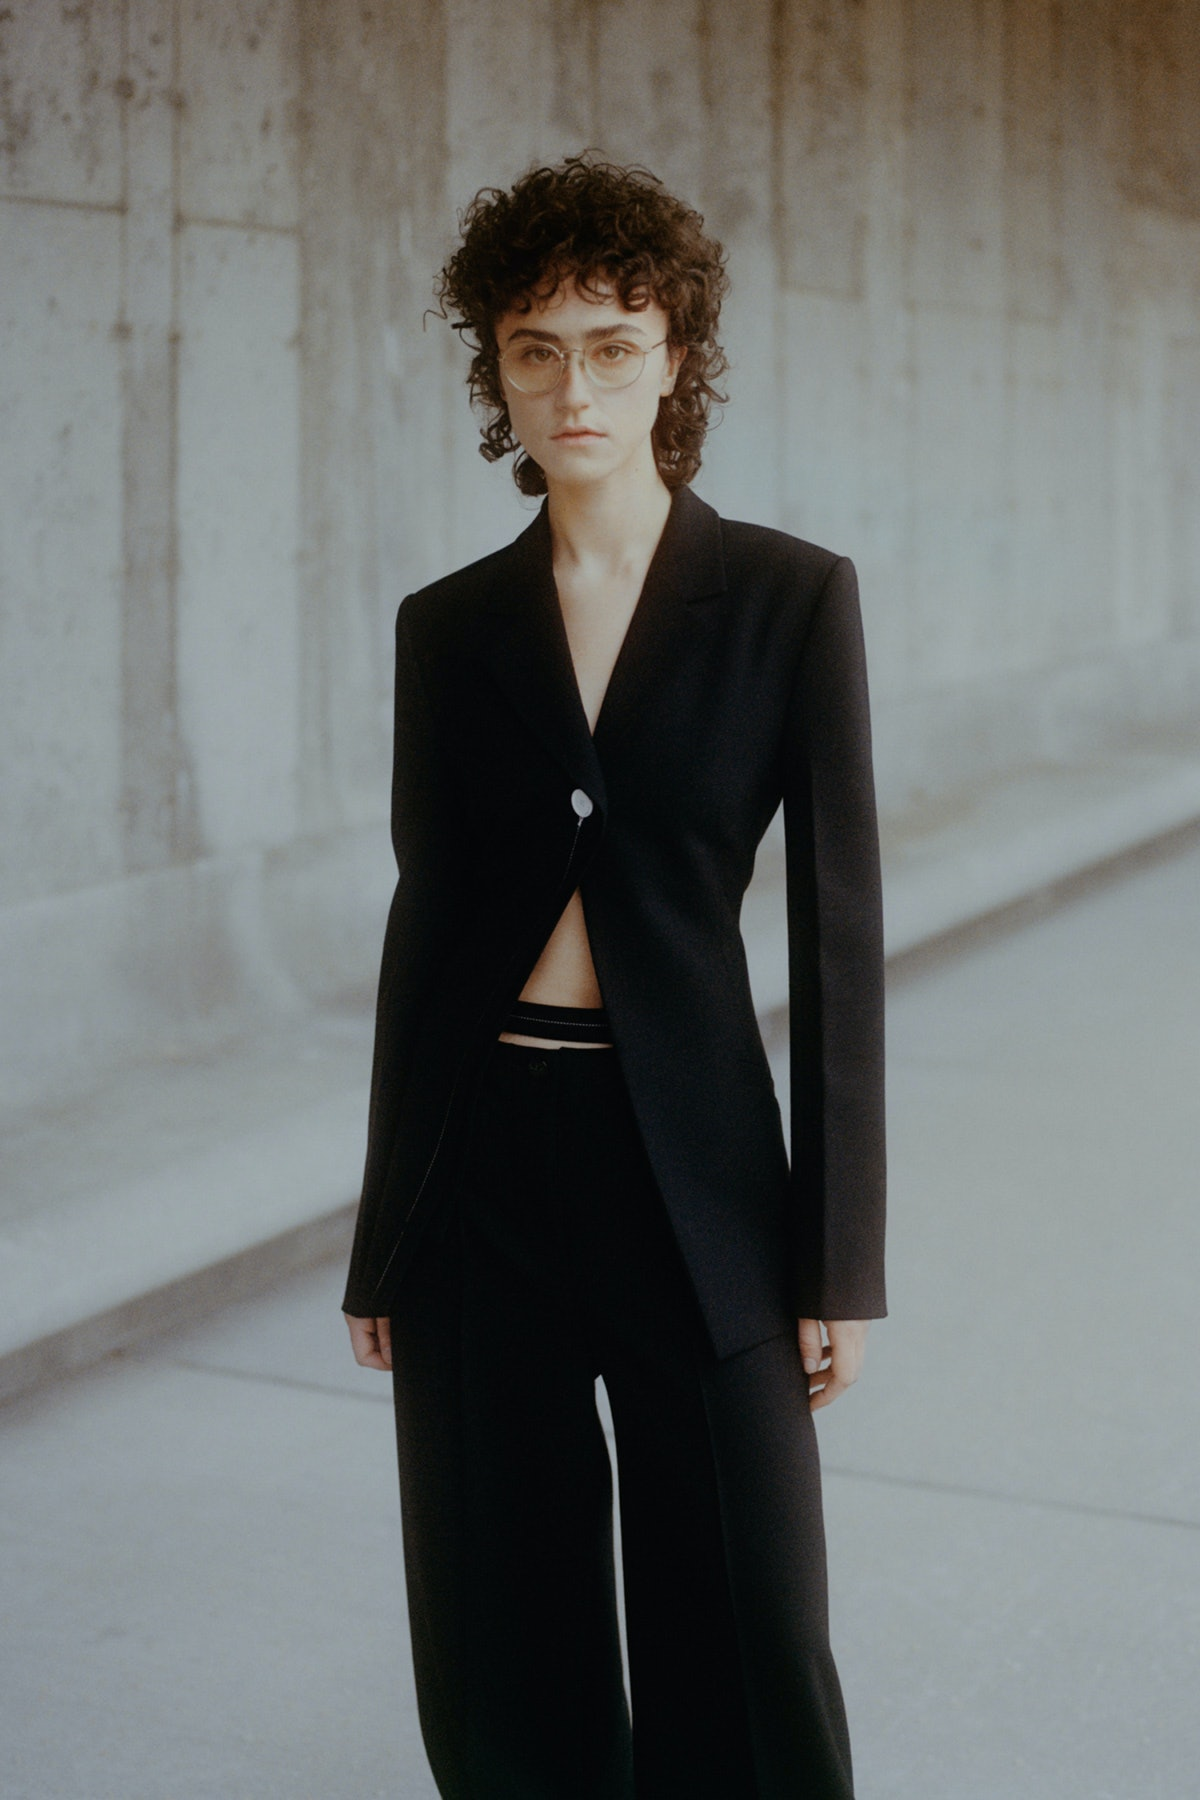 Ella Emhoff models for Proenza Schouler's Fall/Winter 2021 collection.